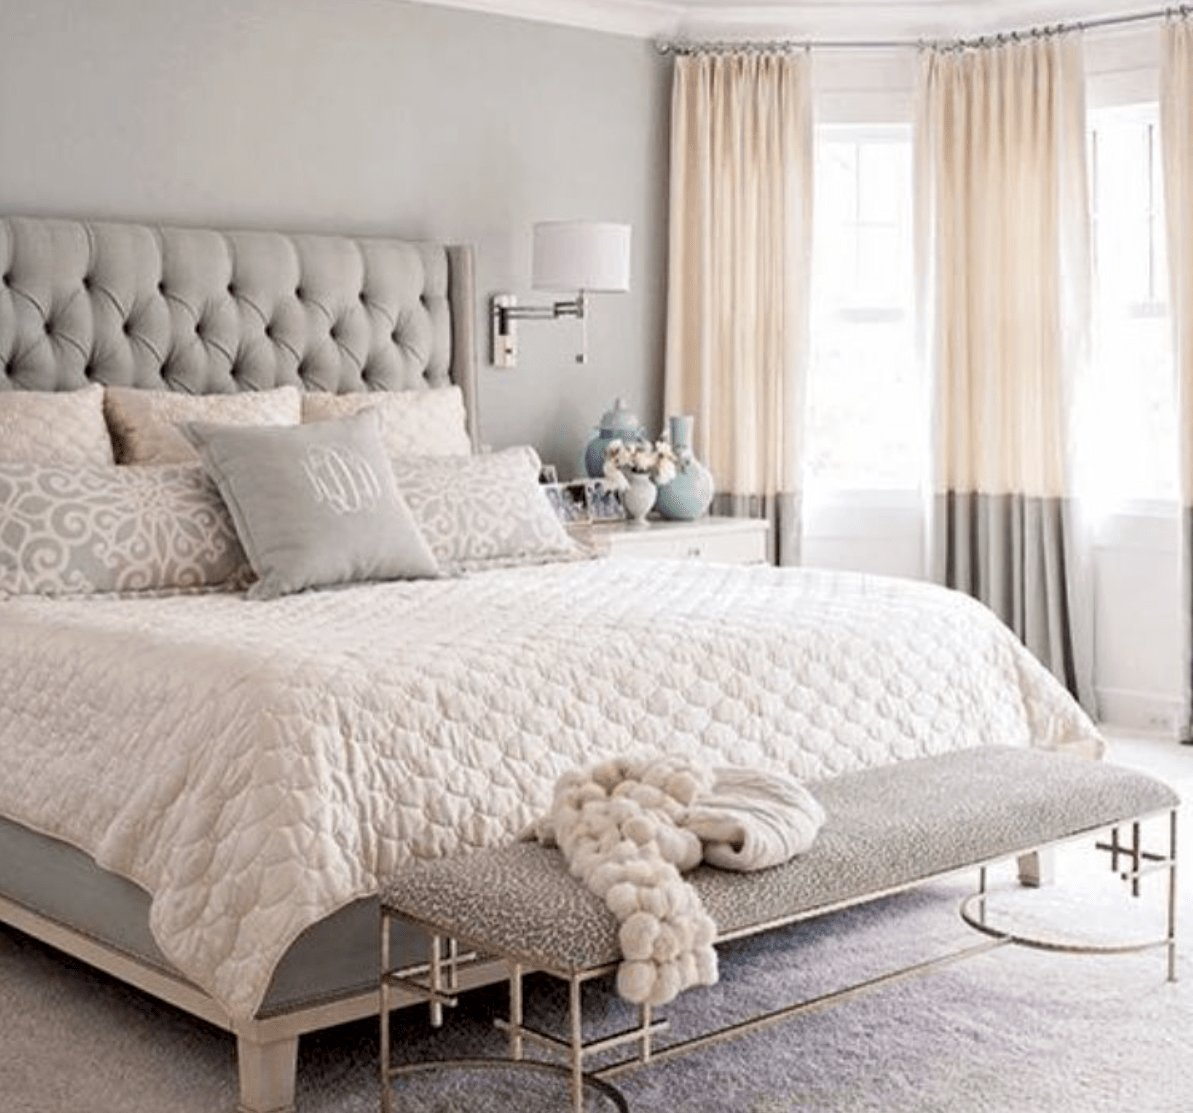 Best You Will Fall In Love With These 23 Pictures Of Amazing Luxurious Bedrooms Sometimes Luxury Can With Pictures